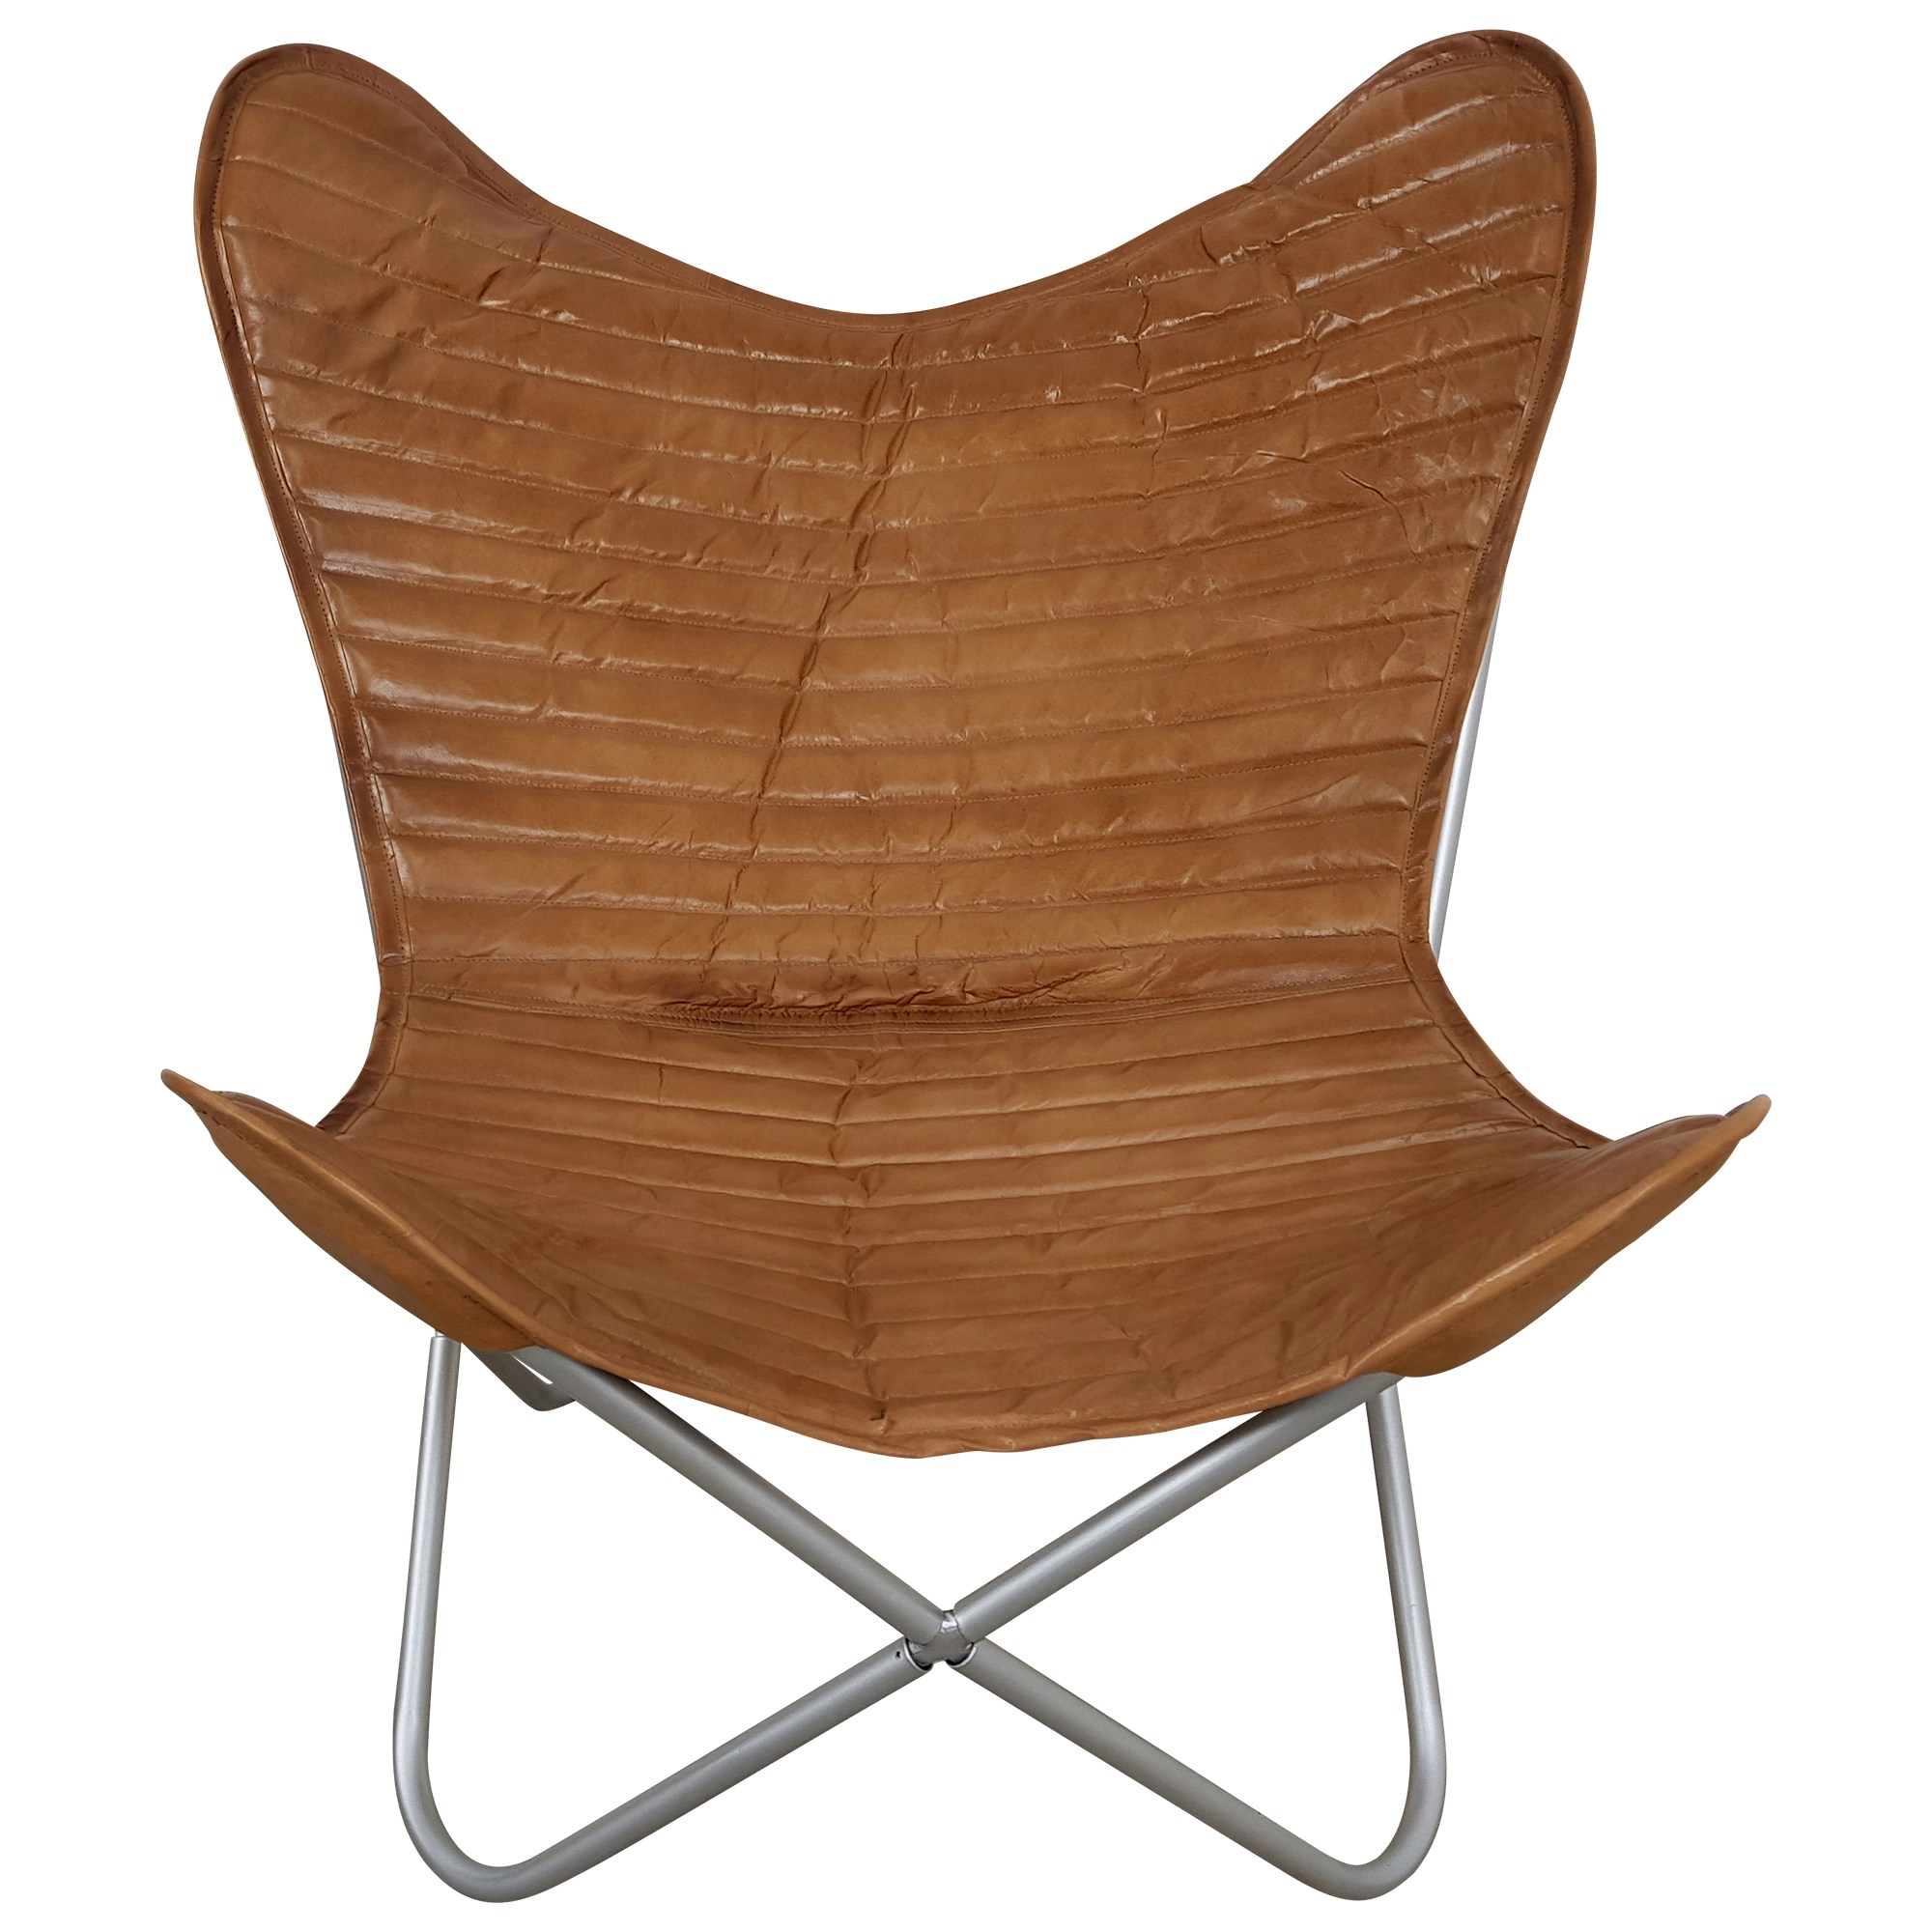 Lounge Sessel Retro Butterfly Chair Sessel Design Lounge Stuhl Echt Leder